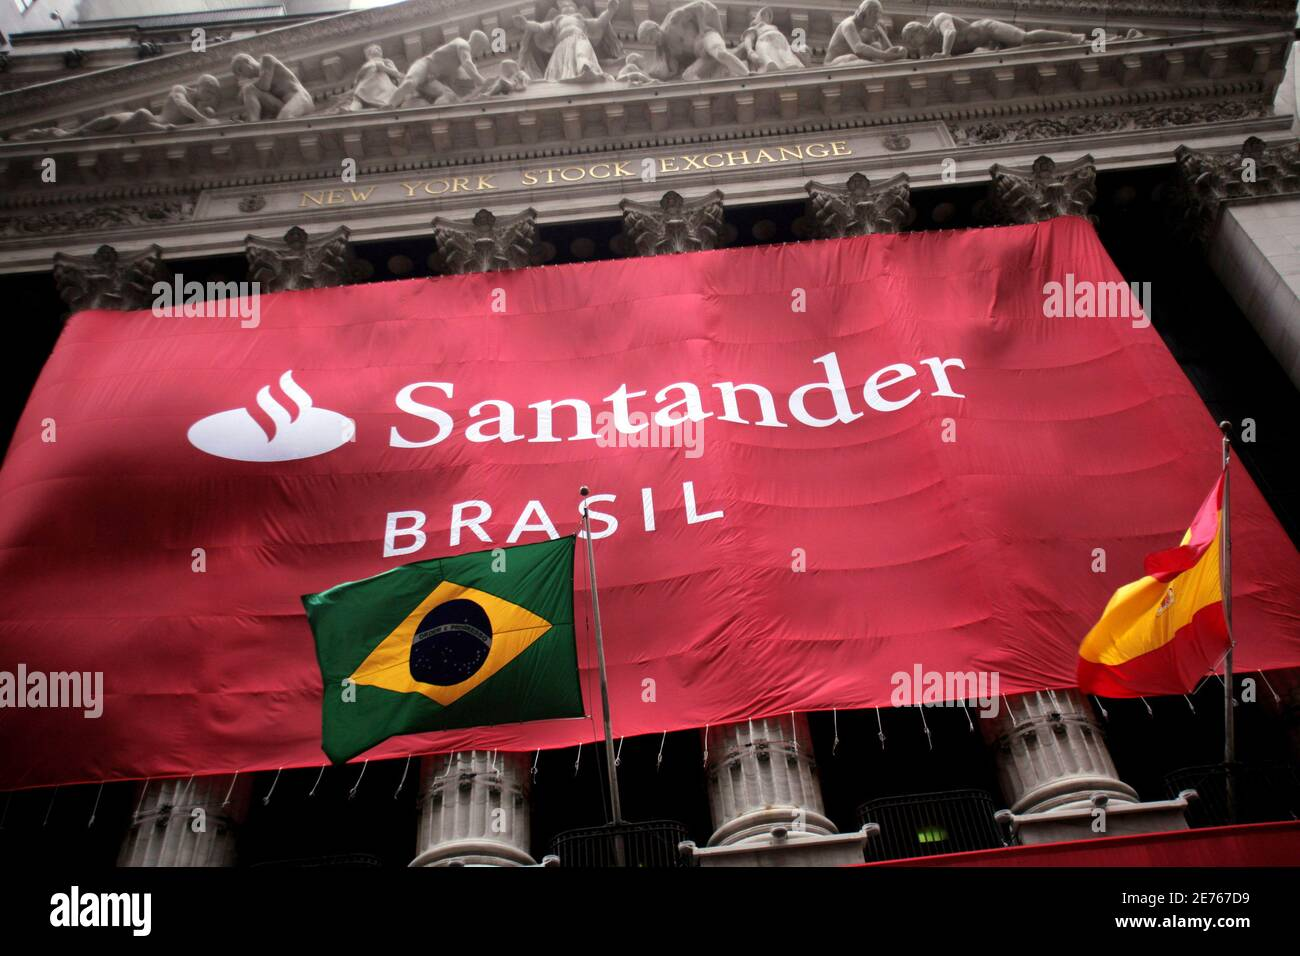 A Banner With The Logo Of Banco Santander Brasil Decorates The Facade Of The New York Stock Exchange October 7 2009 As The Largest Initial Public Offering On A U S Exchange In